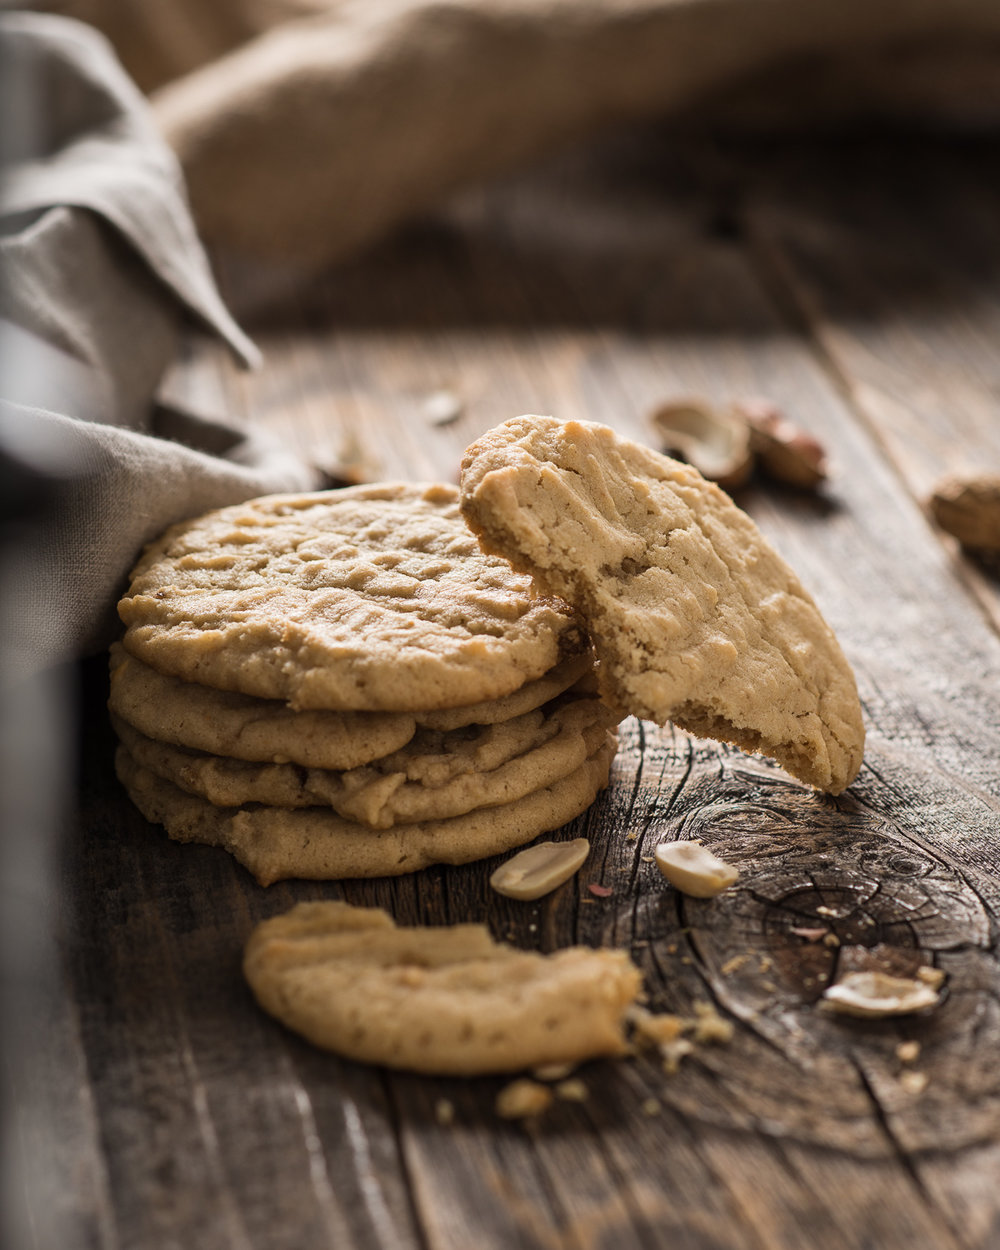 Peanut butter cookies photograph